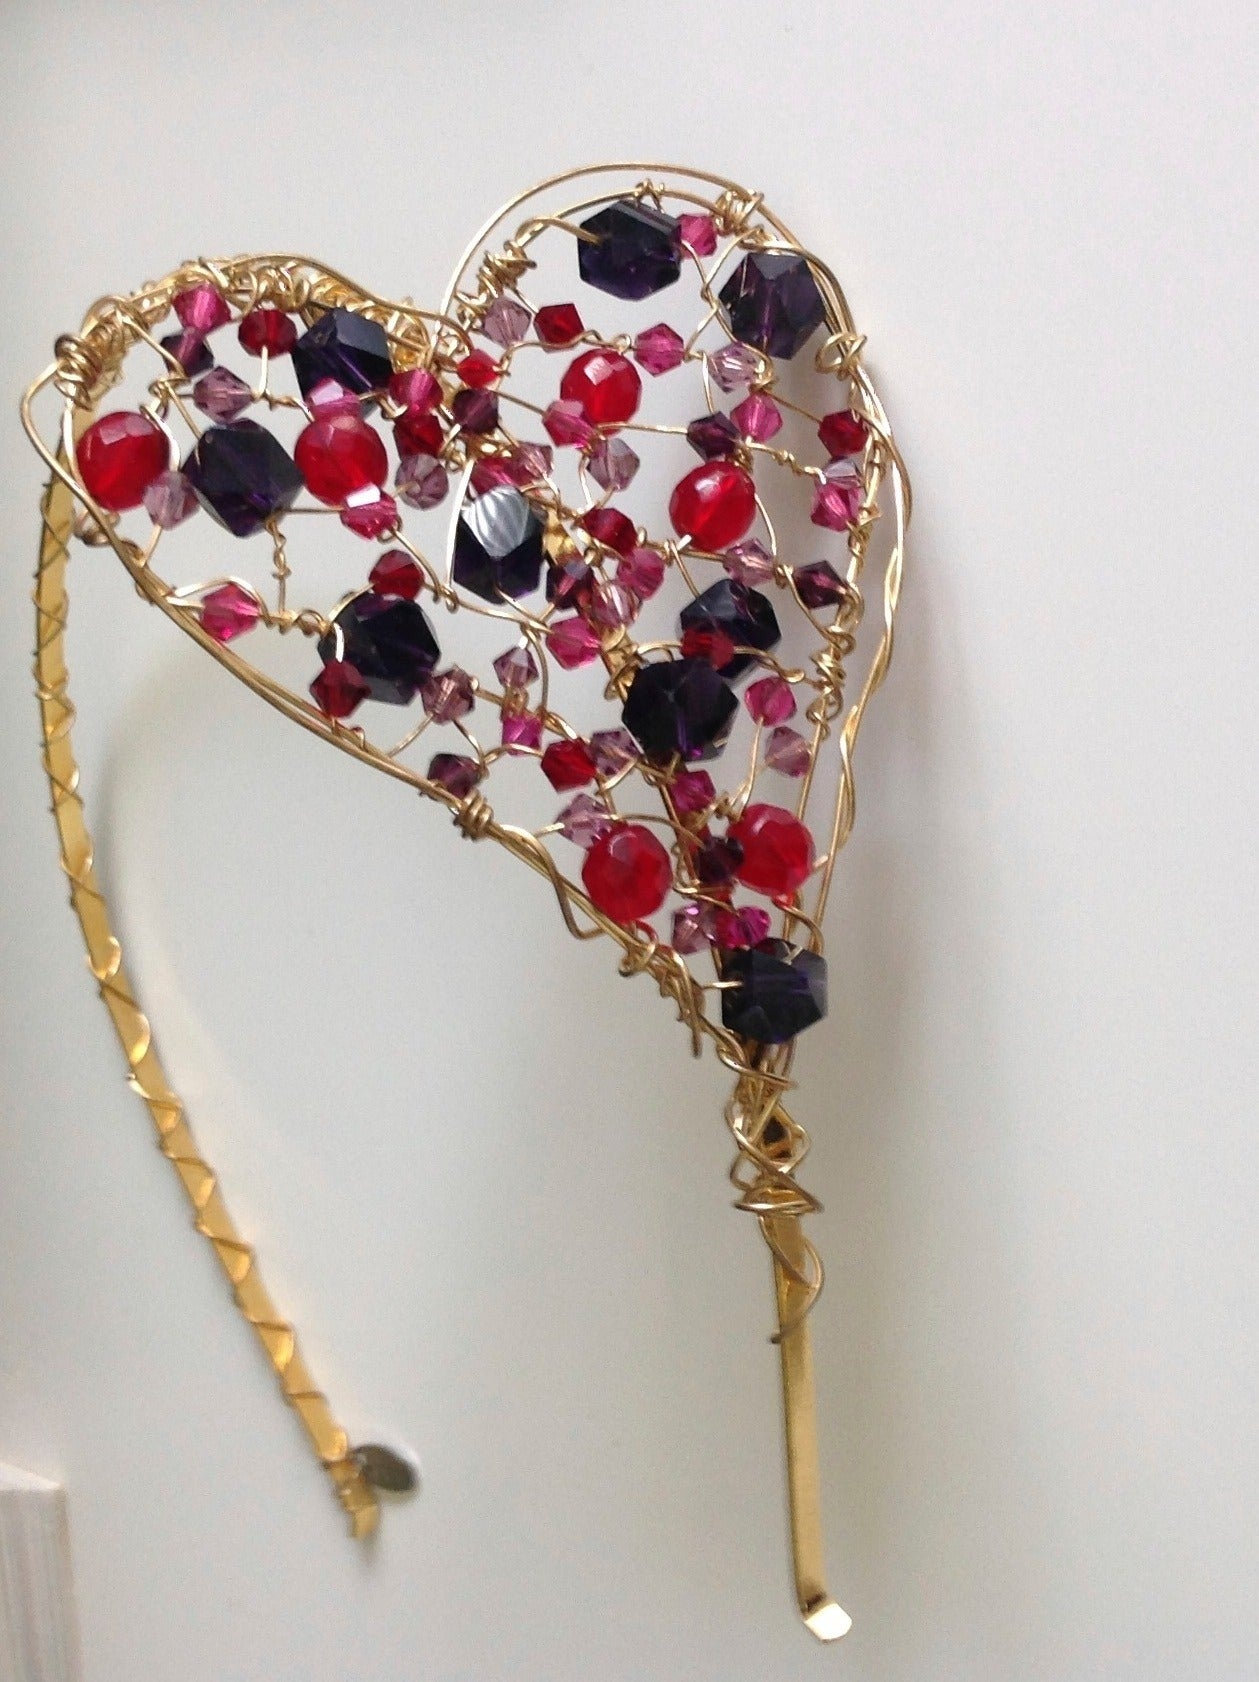 Heart Headpiece For Sale At 1stdibs